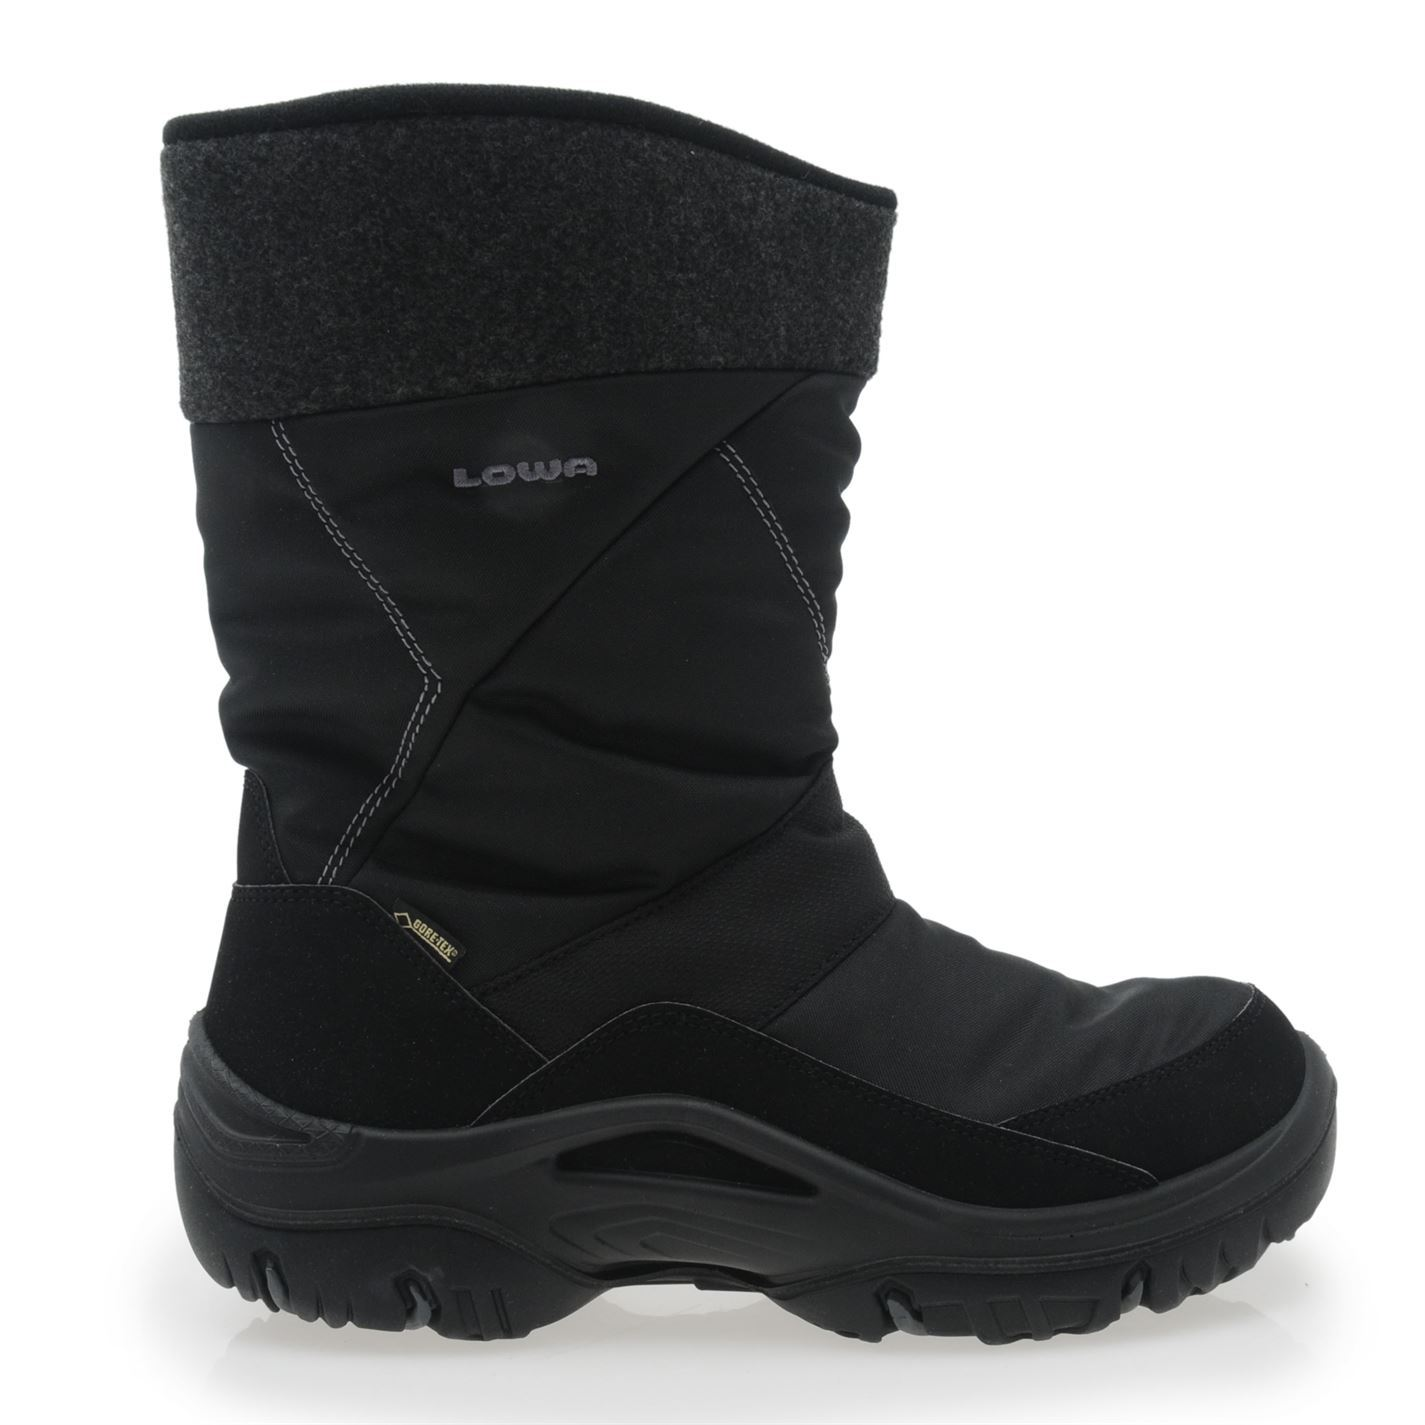 Lowa Mens SAAS GRUND GTX Snow Boots Slip On Winter Shoes | eBay